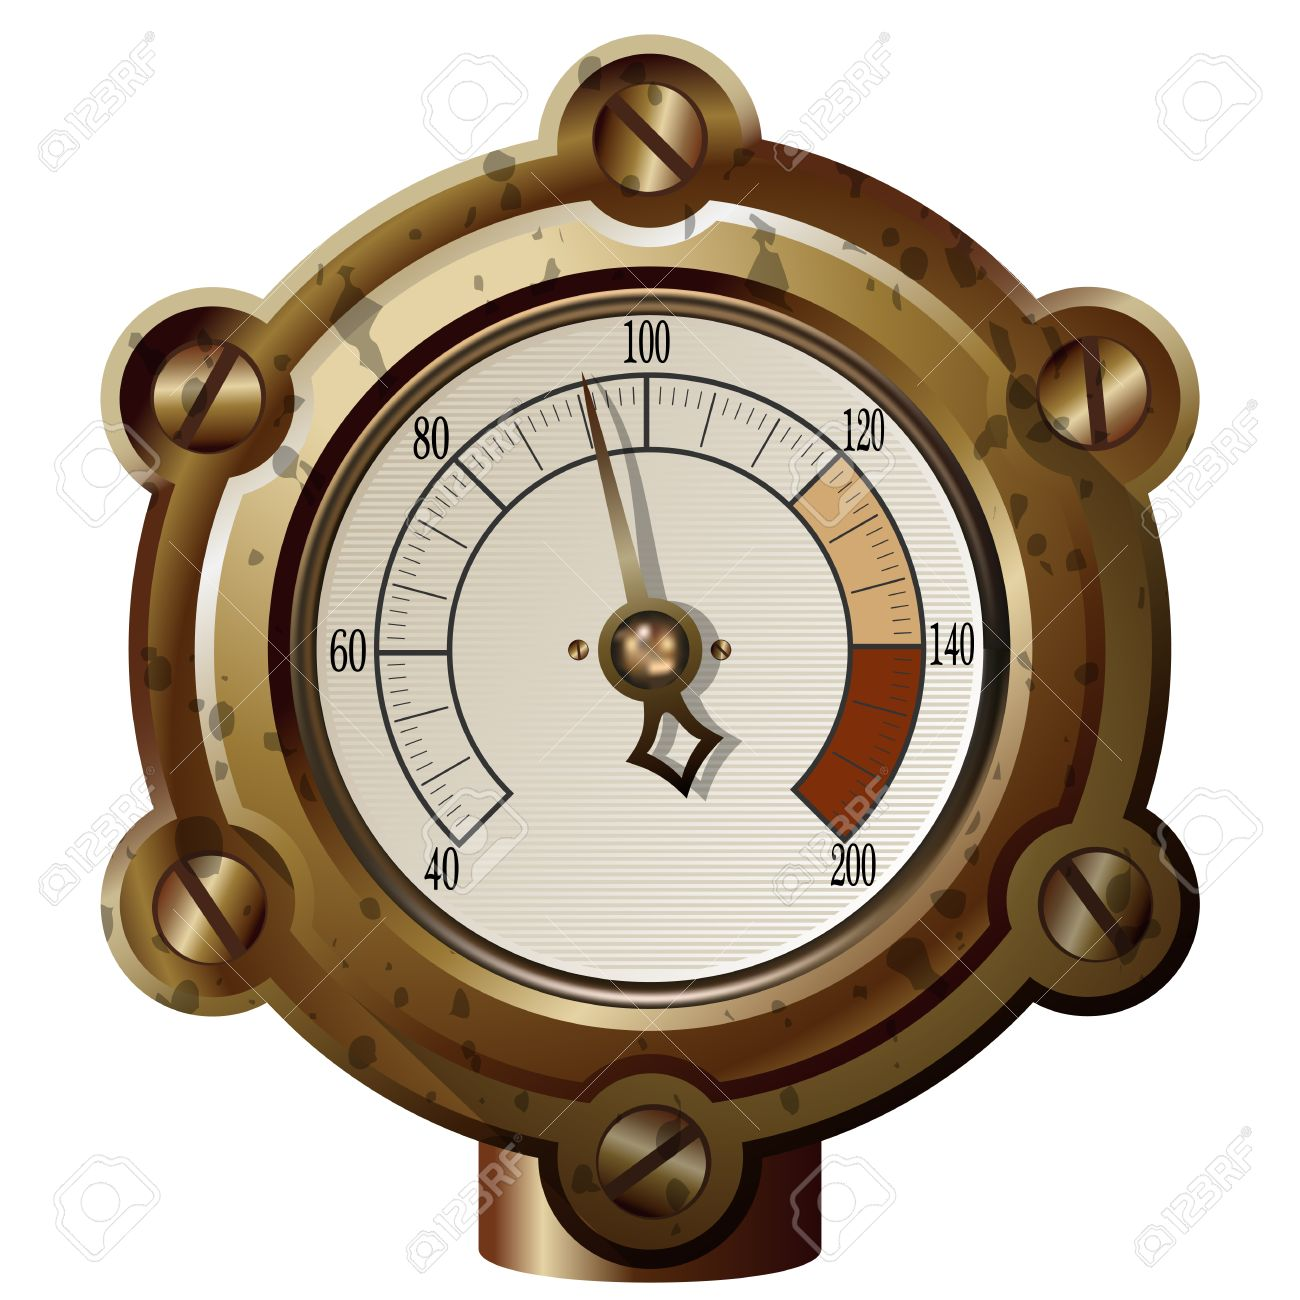 the measuring device in the steampunk style. Gradient mash Stock Vector - 27710417